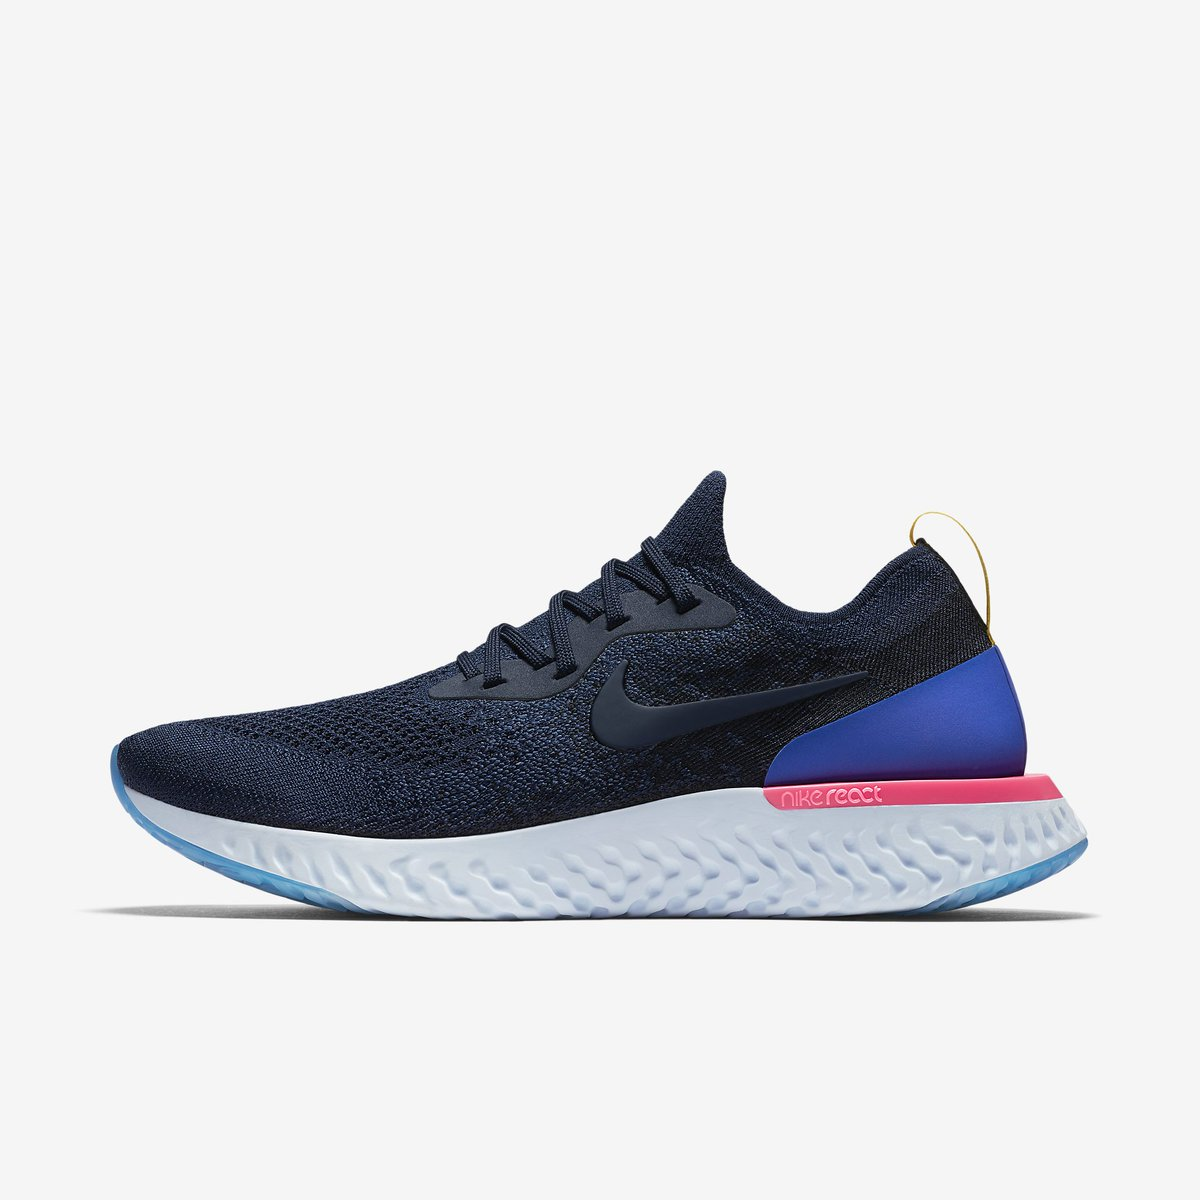 df9eaf4fa6b2 Nike Epic React Flyknit on Eastbay with FREE shipping Navy -   https   go.j23app.com 6kf White -  https   go.j23app.com 6kf  refresh at  9 59am ...